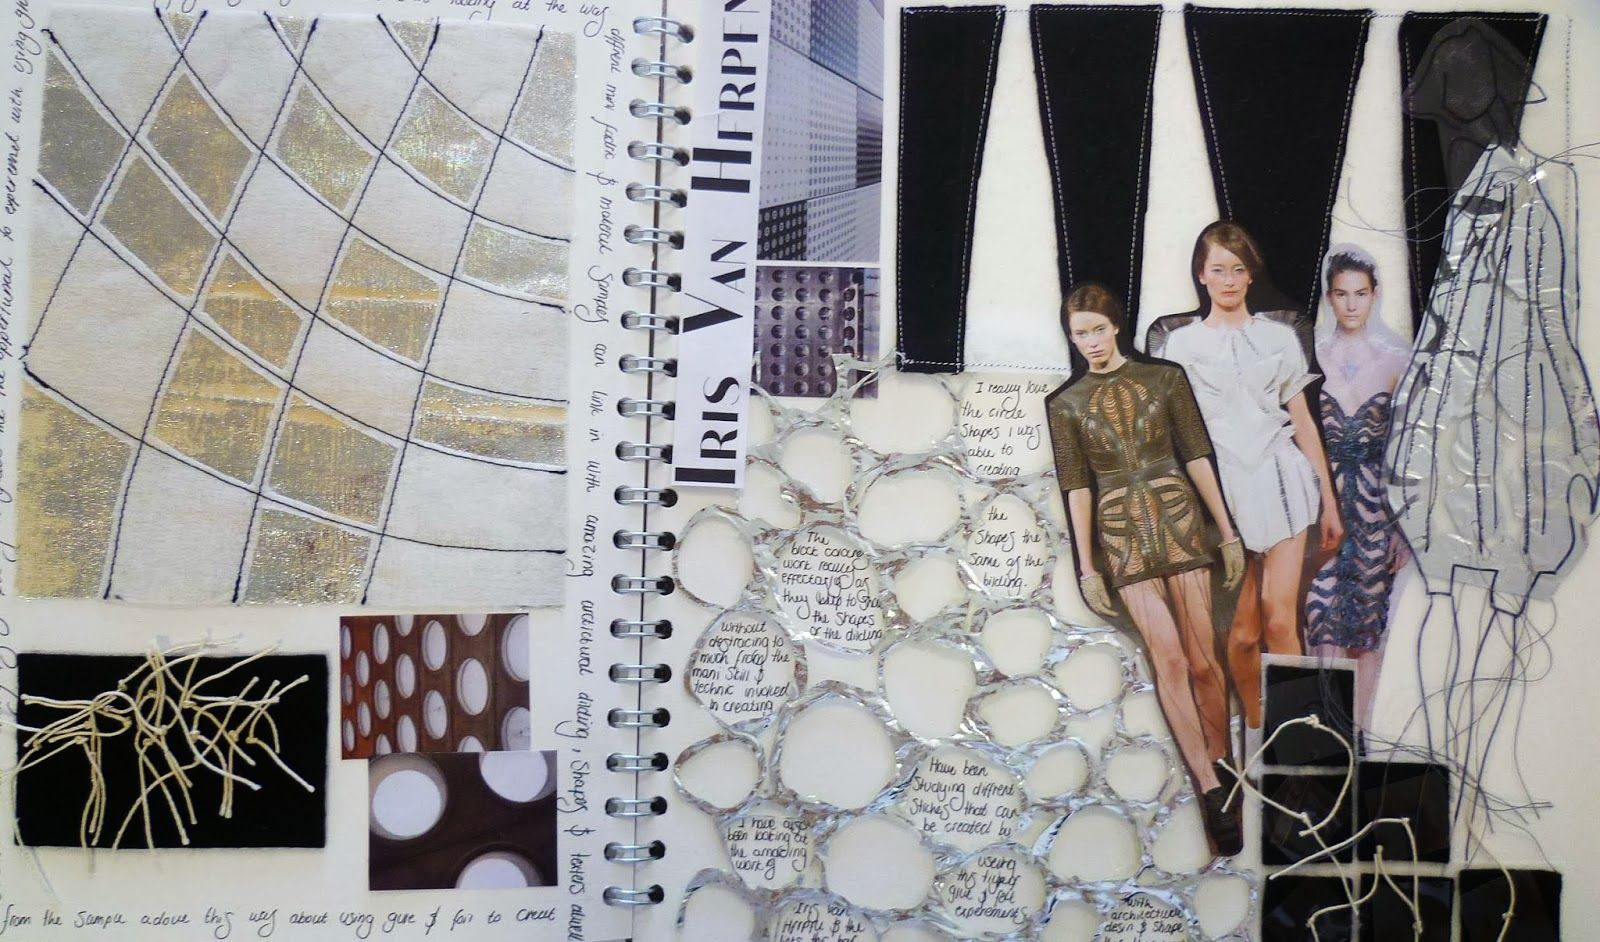 fashion design research A fashion designer is someone who loves to study fashion trends, sketch designs, select materials, and have a part in all the production aspects of their designs.